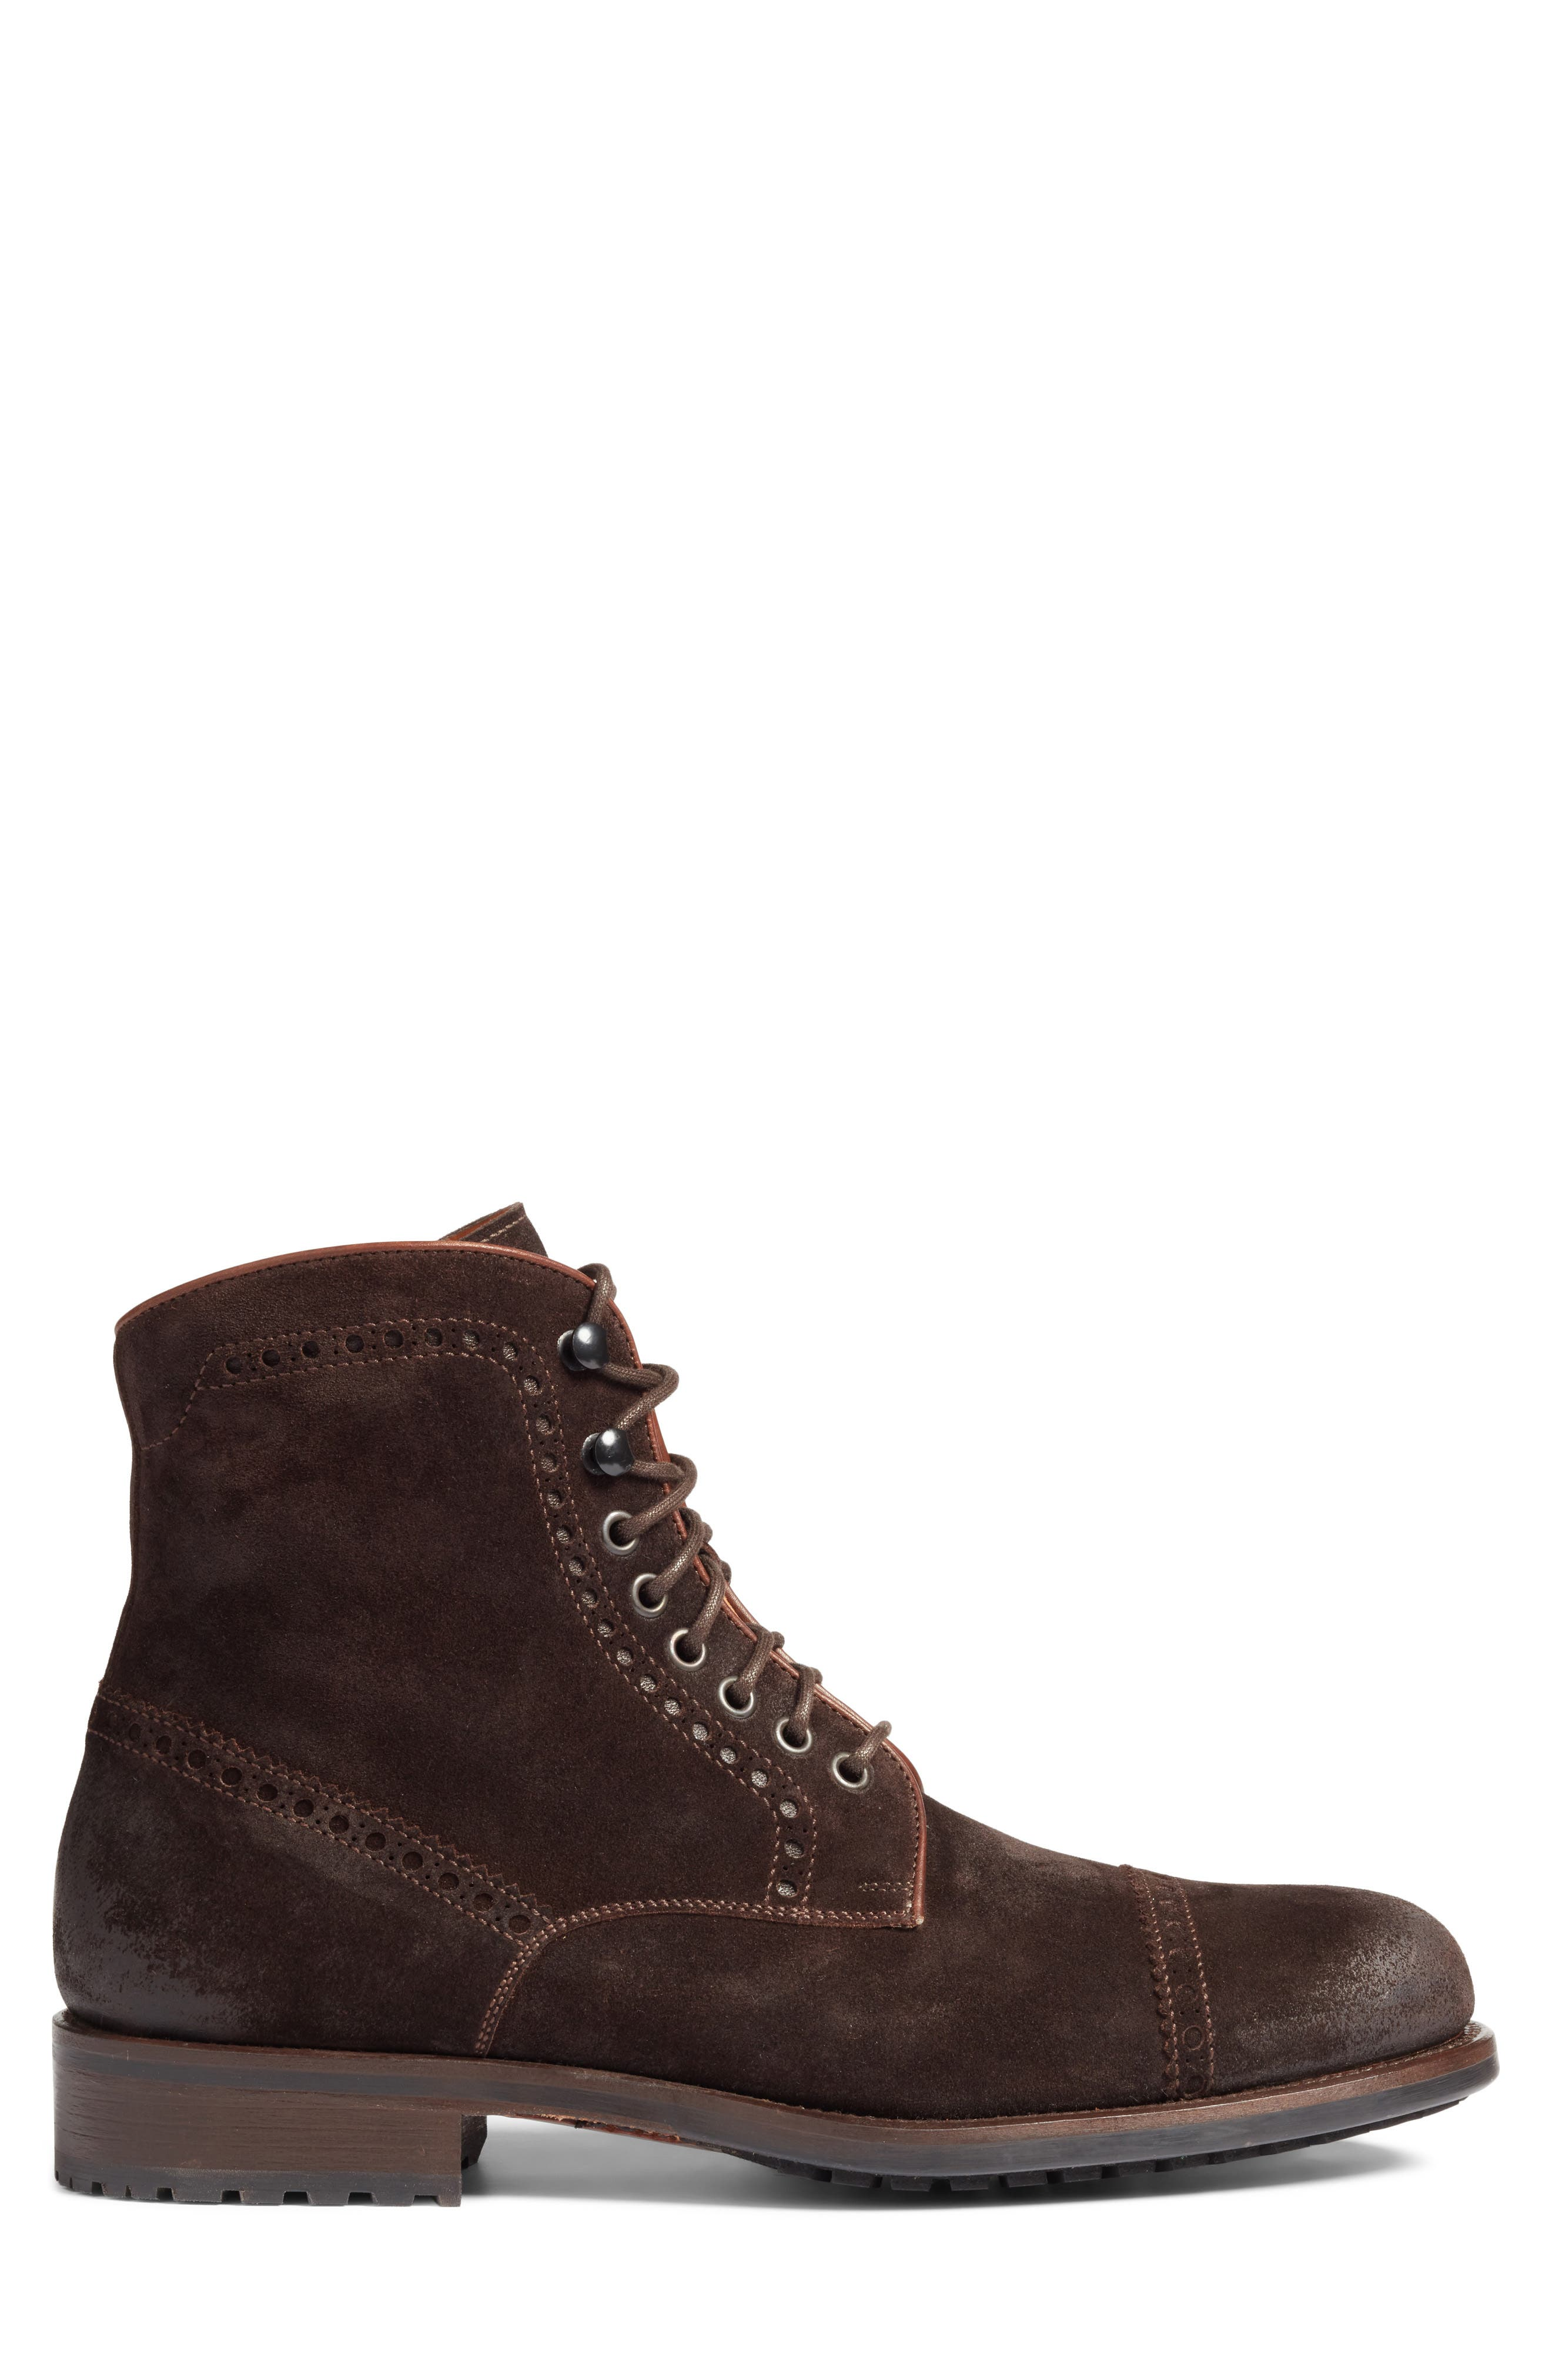 Palmer Cap Toe Boot,                             Alternate thumbnail 3, color,                             Brown Suede